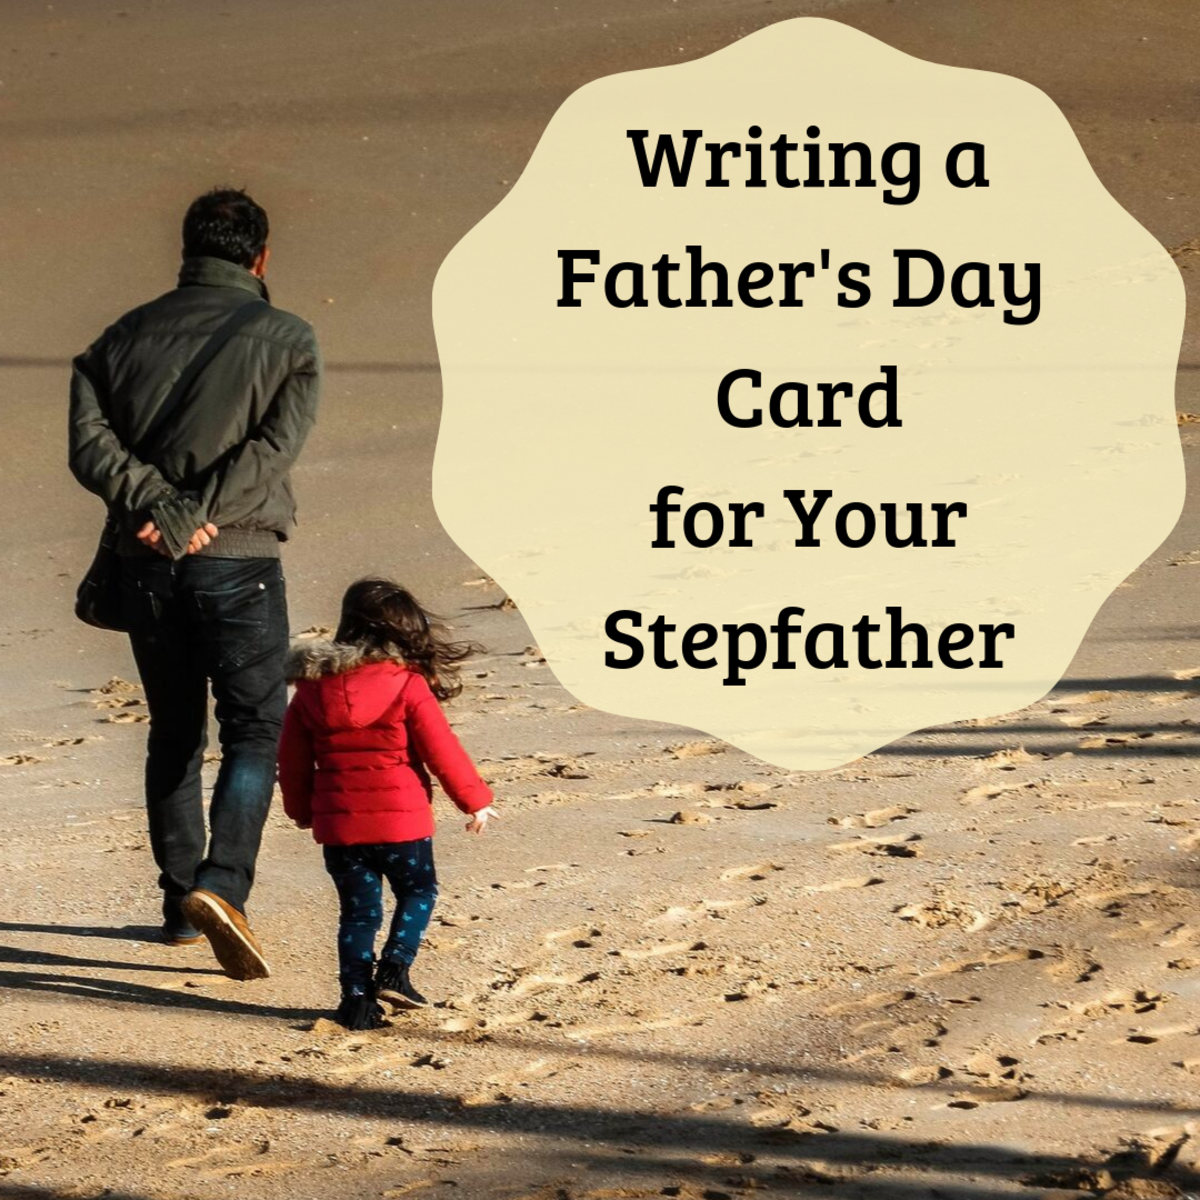 Get ideas for what to say in a Father's Day card for your stepdad.